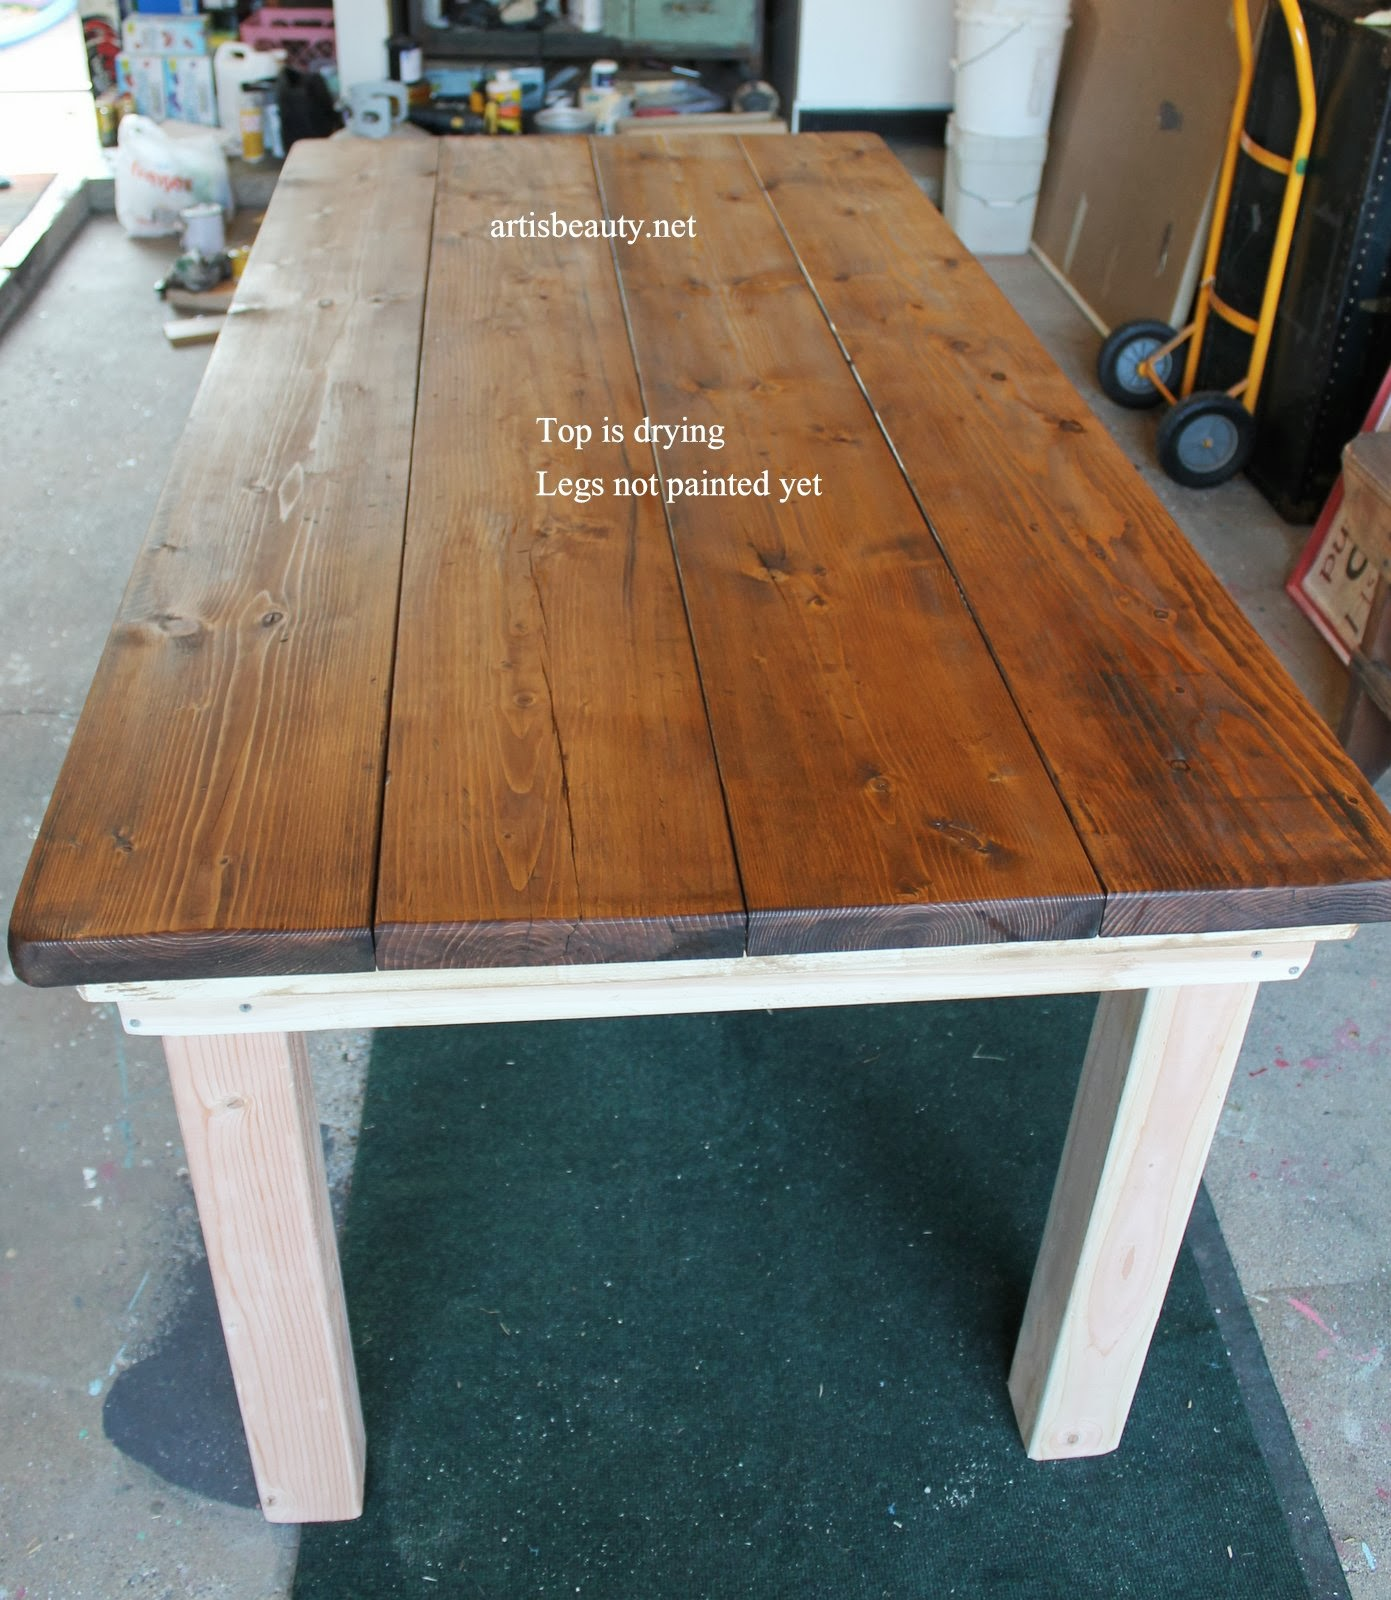 diy farmhouse table top Remodelaholic | Build a Farmhouse Table For Under $100 diy farmhouse table top